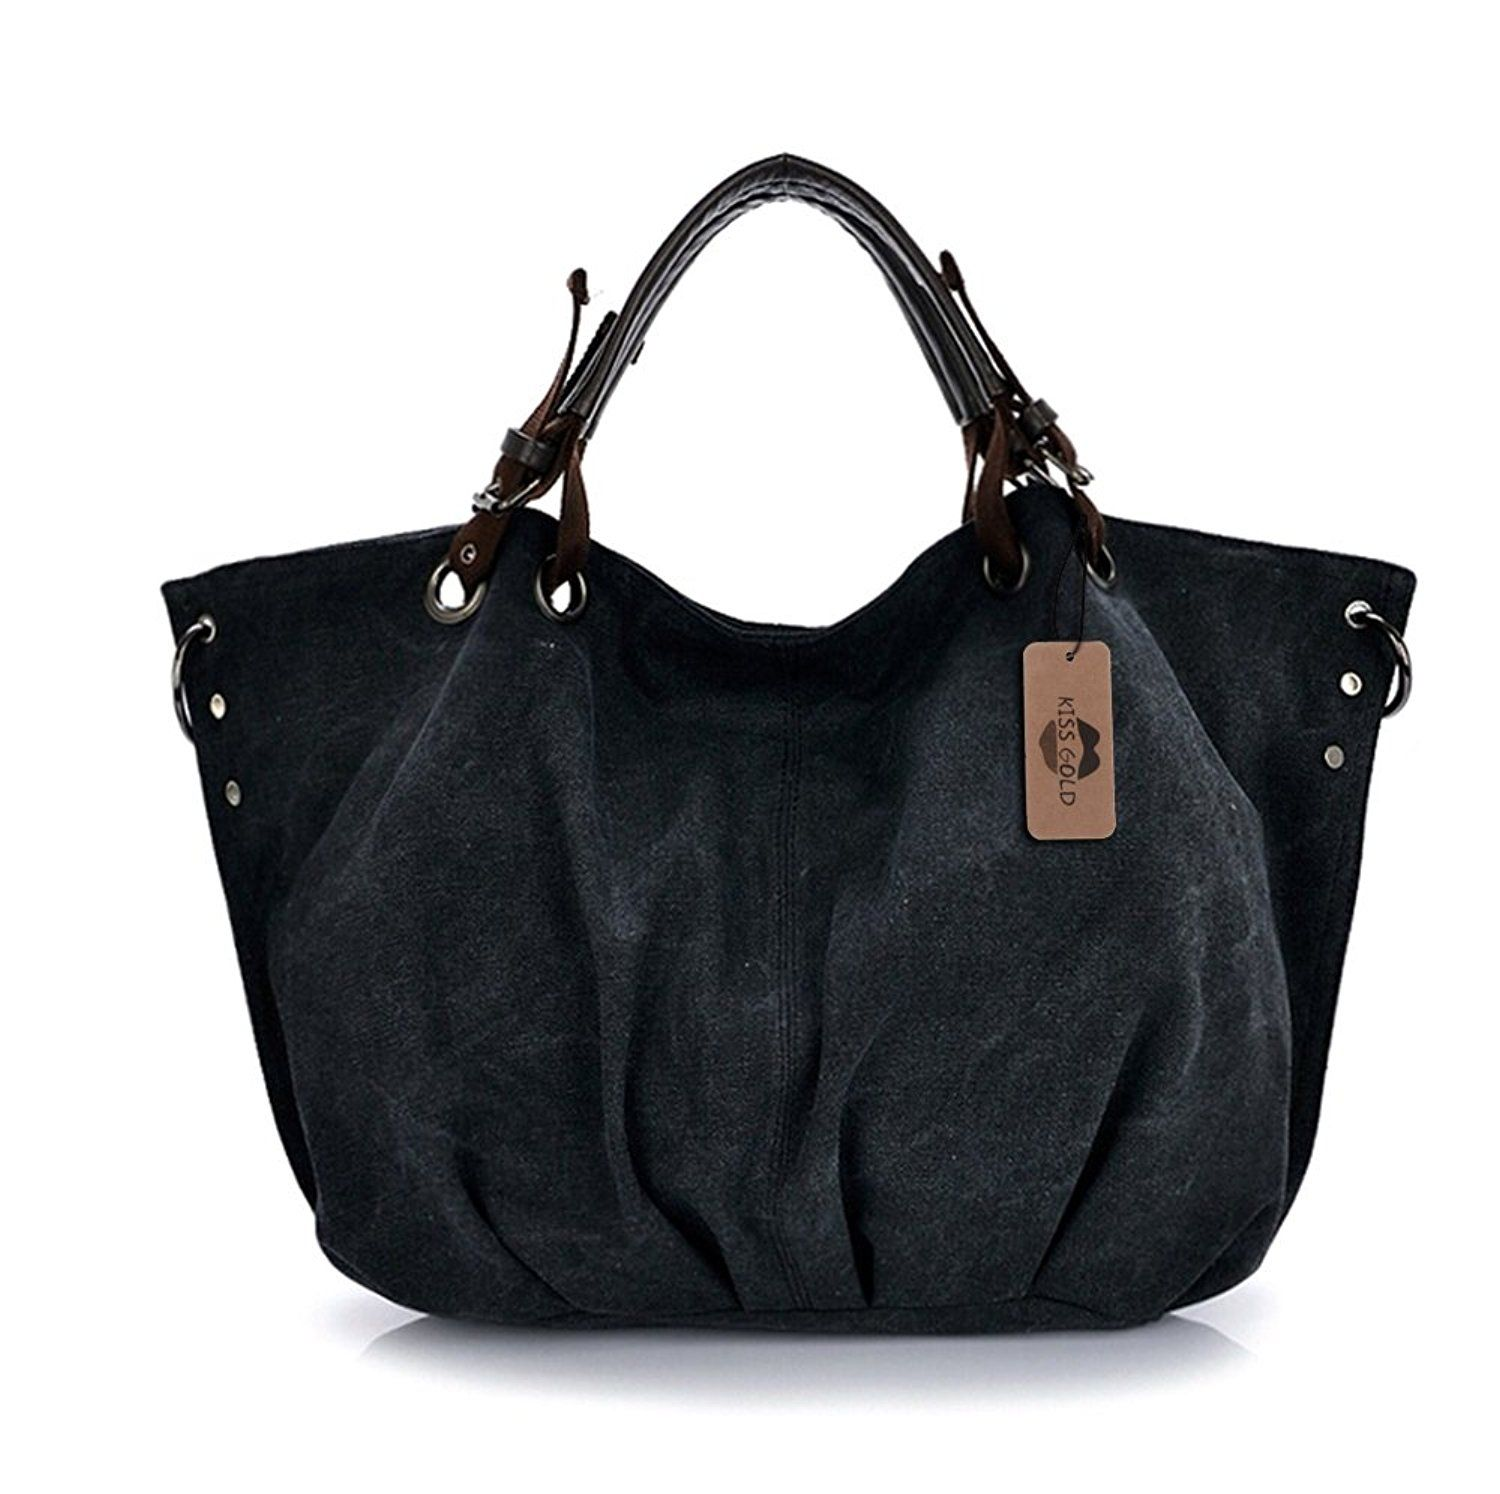 5c293cebef KISS GOLD(TM) European Style Canvas Large Tote Top Handle Bag Shopping Hobo  Shoulder Bag